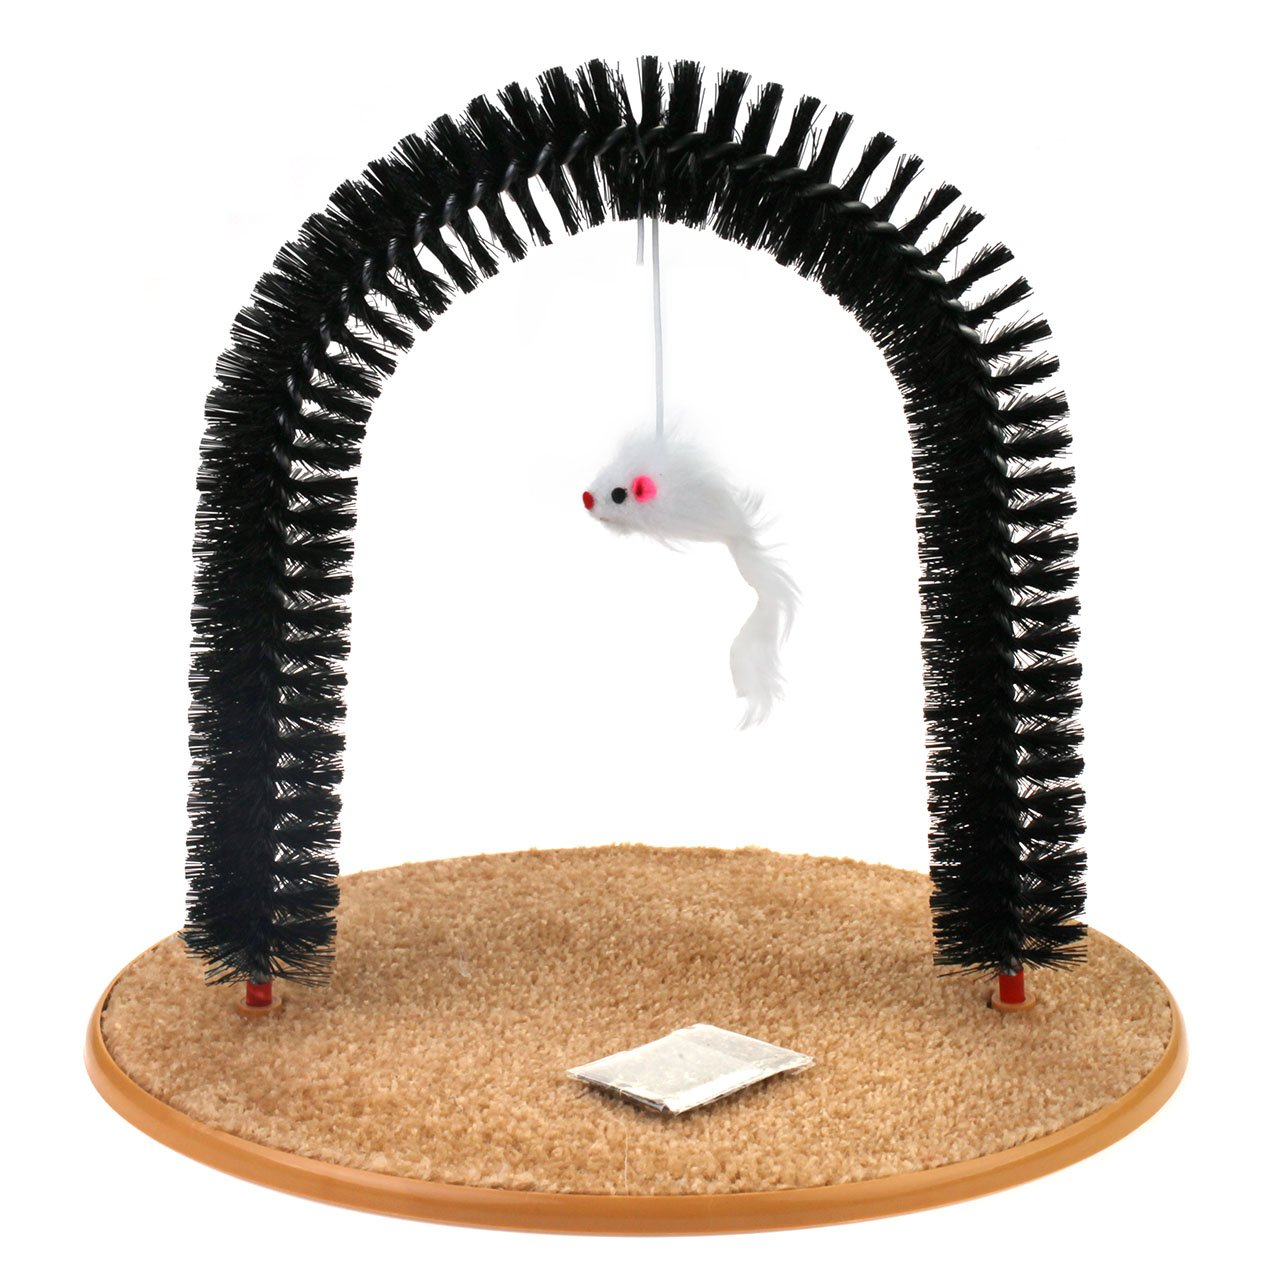 Chiwava Pet Cat Arch with Catnip and Rattle Mice - Self Grooming,Scratching and Massaging Cat Toy & Controls Shedding